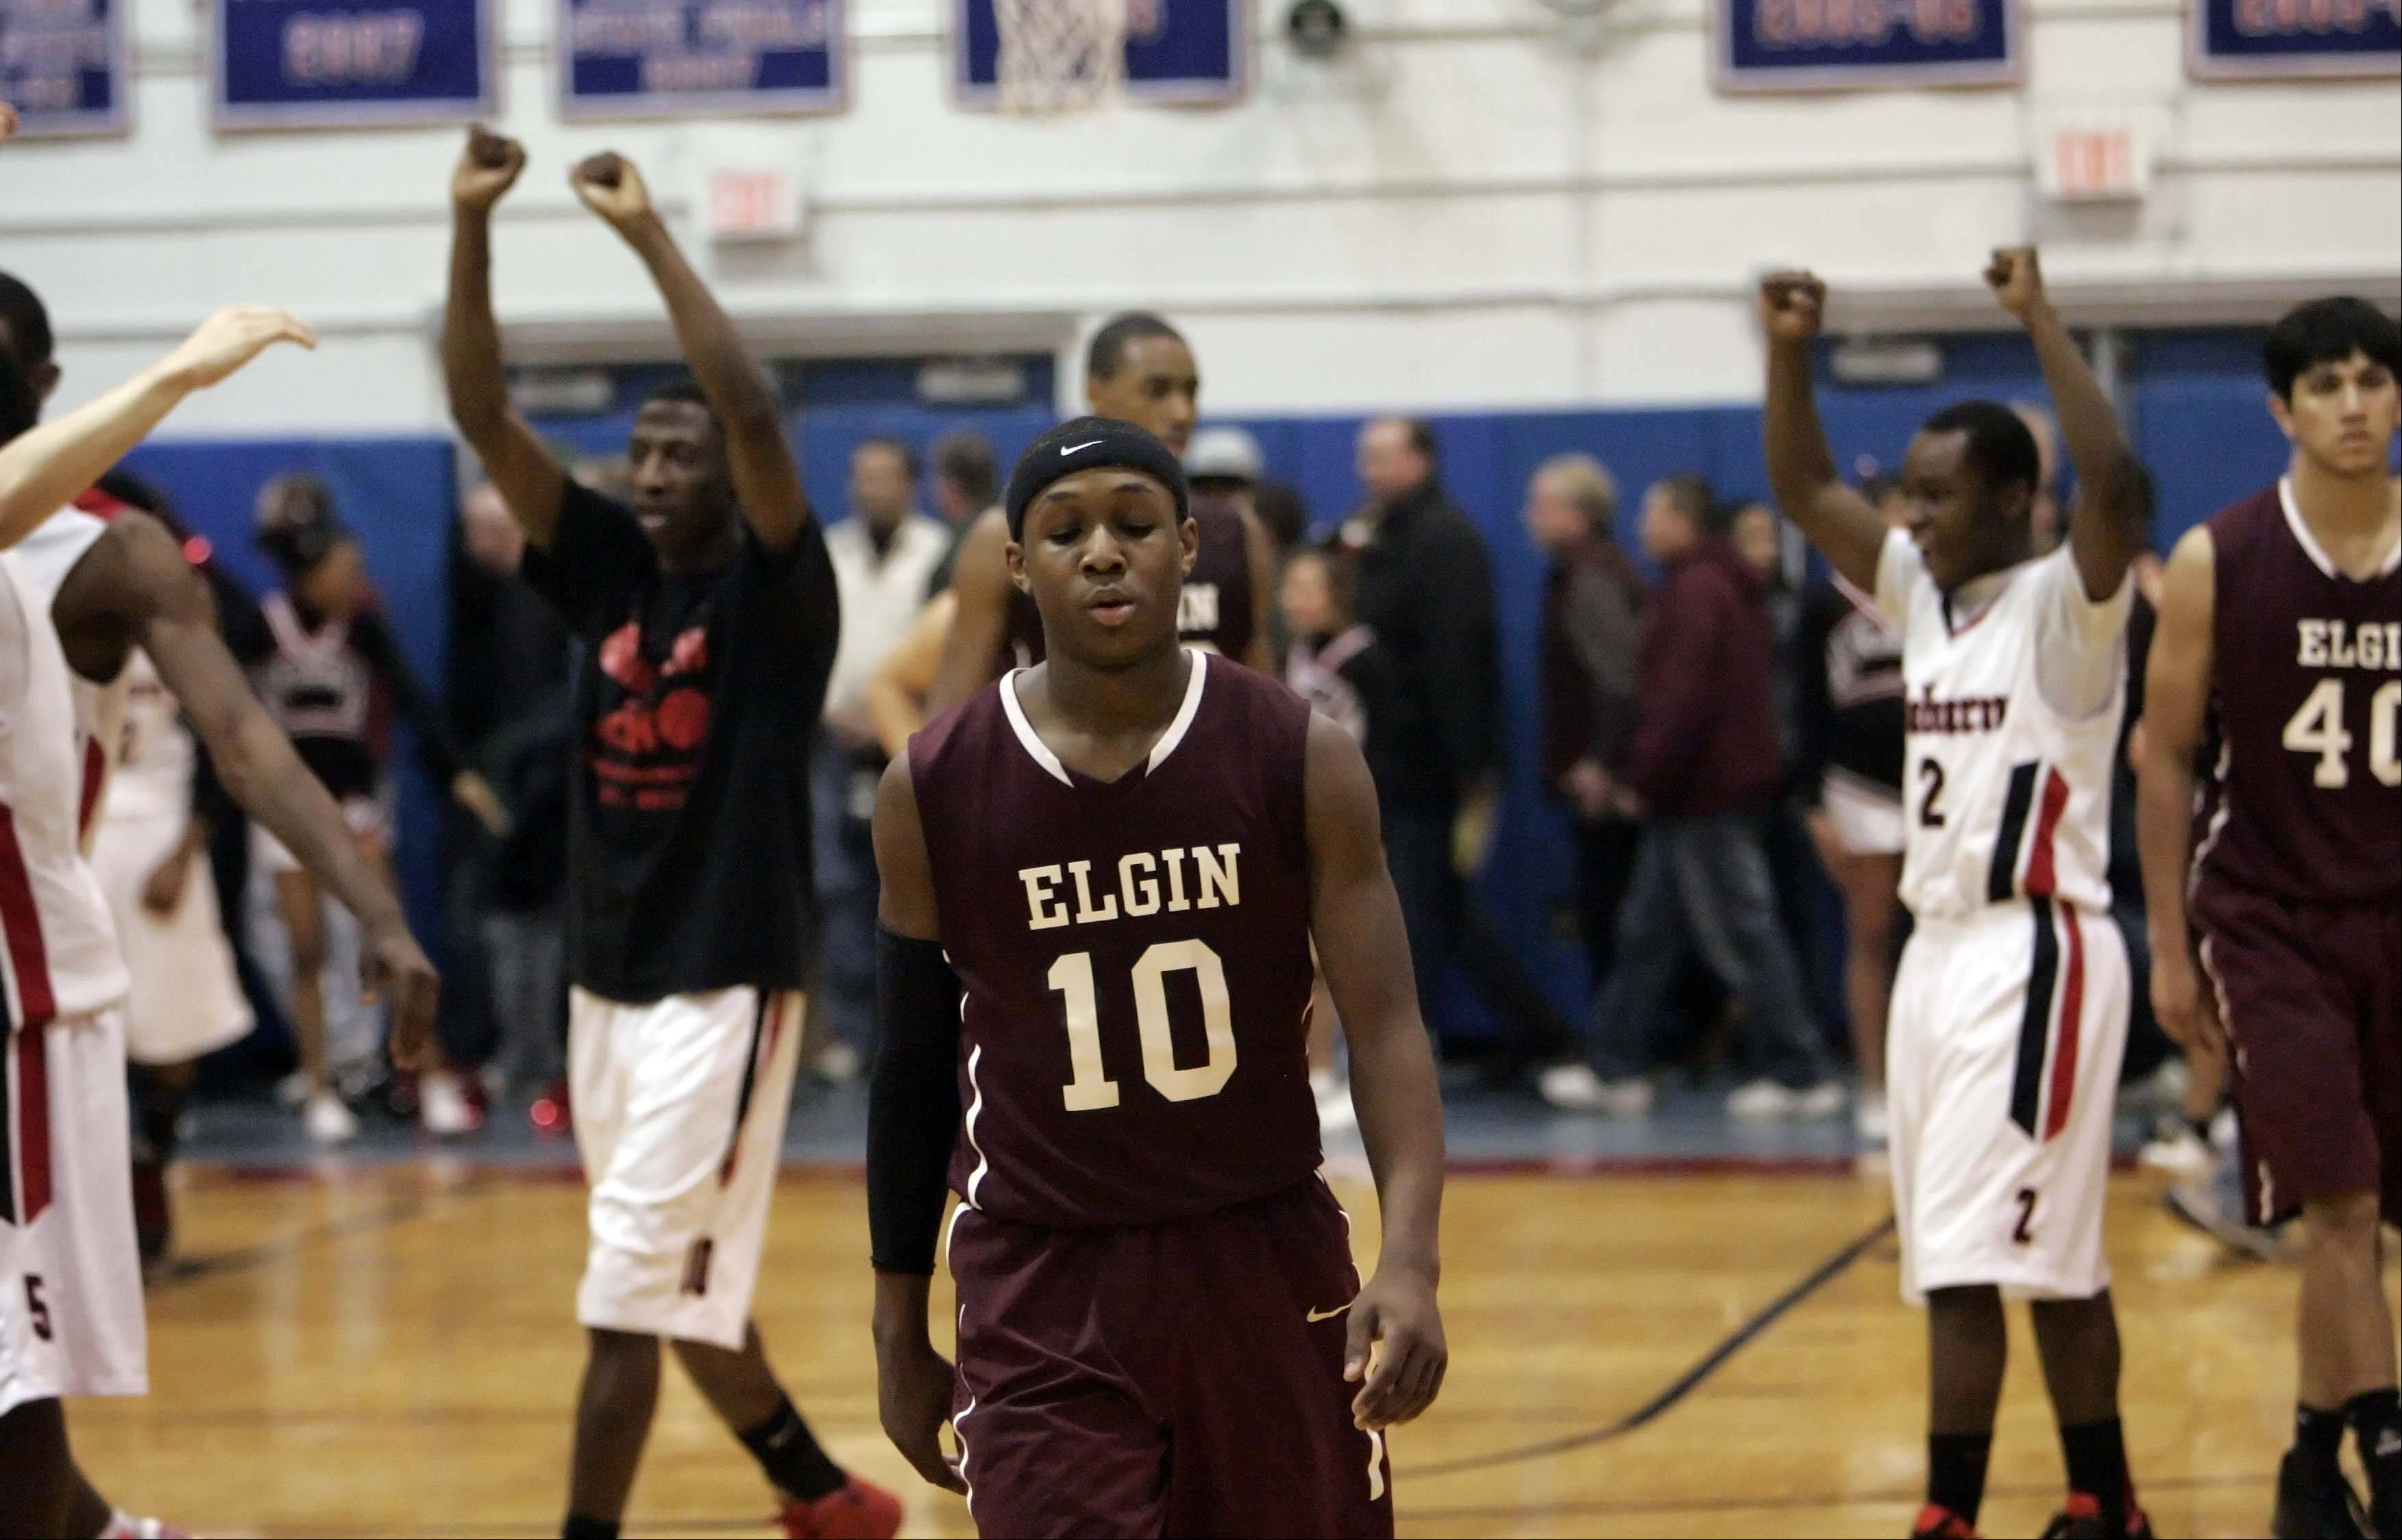 Images: Elgin vs. Rockford Auburn boys basketball